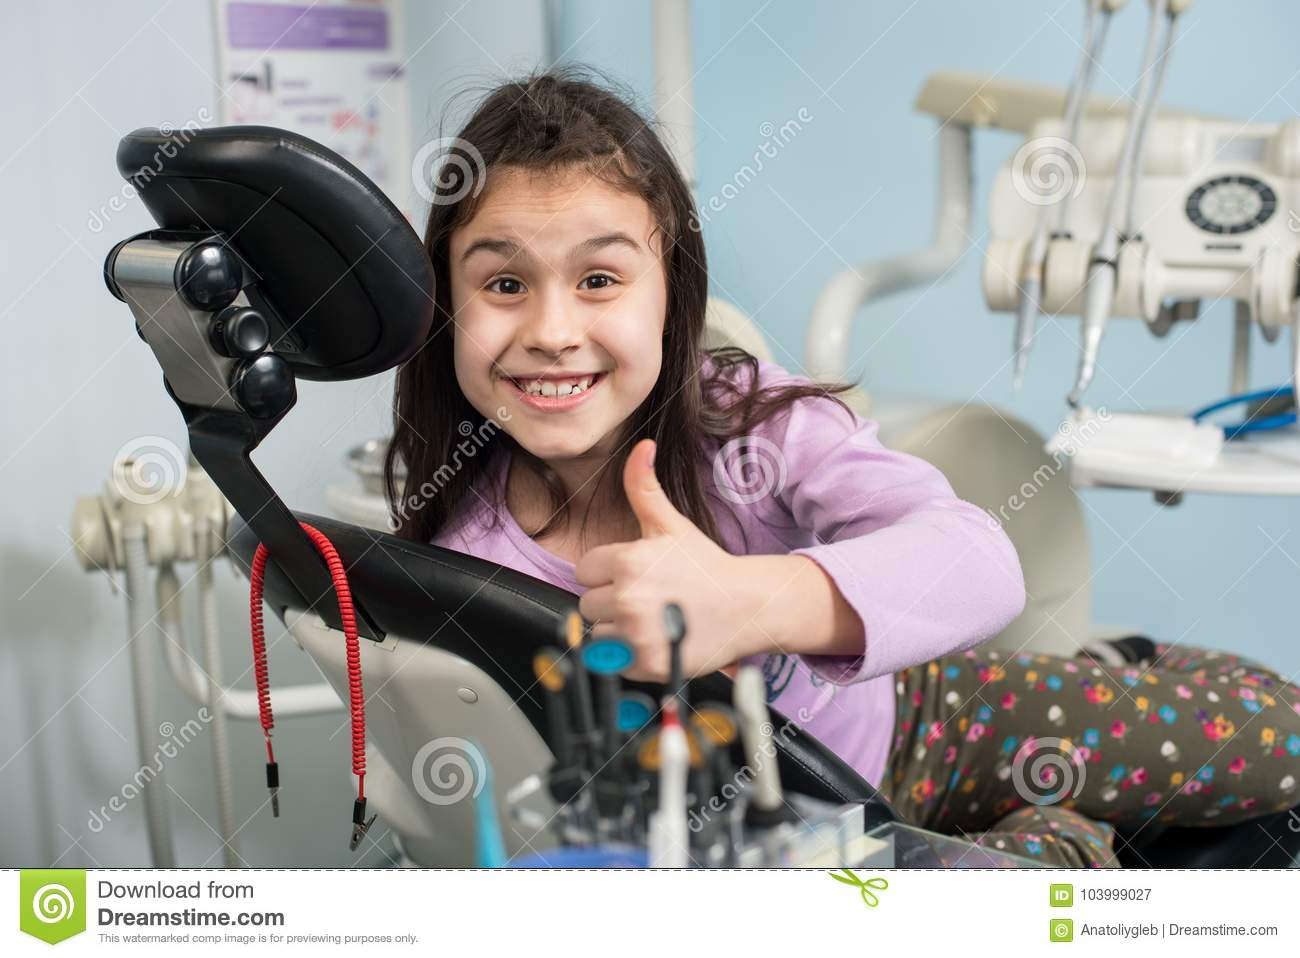 Cheerful patient girl showing thumbs up at dental clinic office. Medicine, stomatology and health care concept